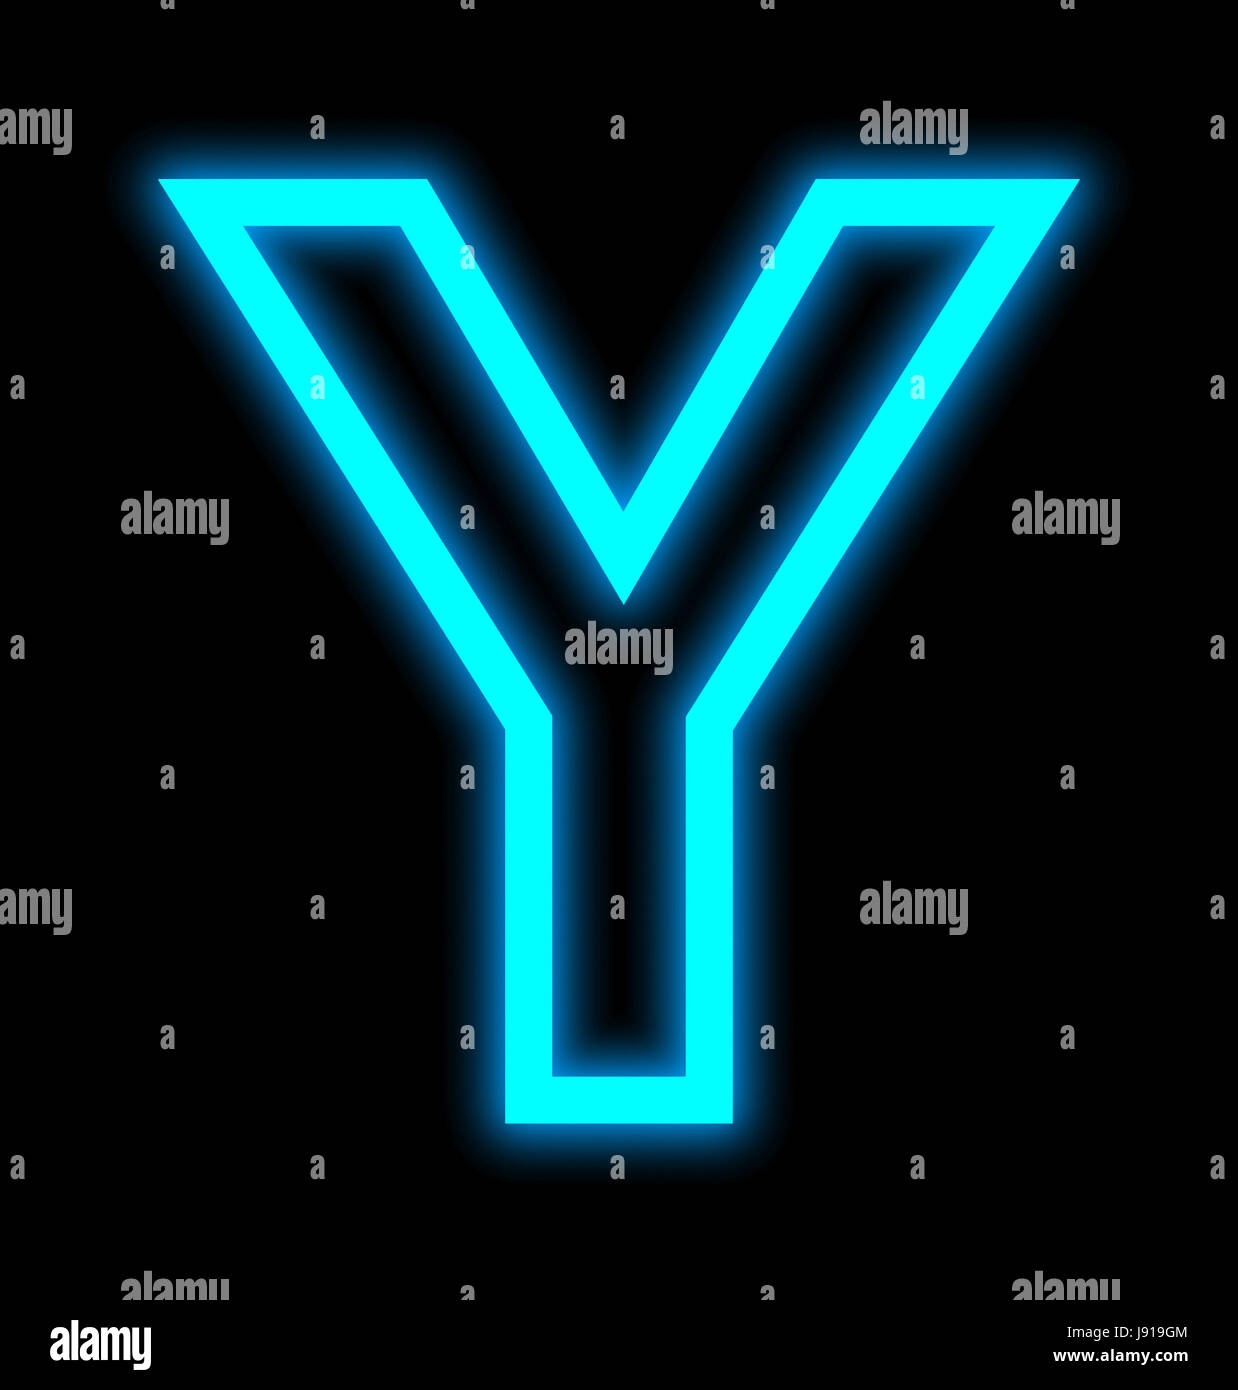 Letter y neon lights outlined isolated on black background stock letter y neon lights outlined isolated on black background altavistaventures Image collections